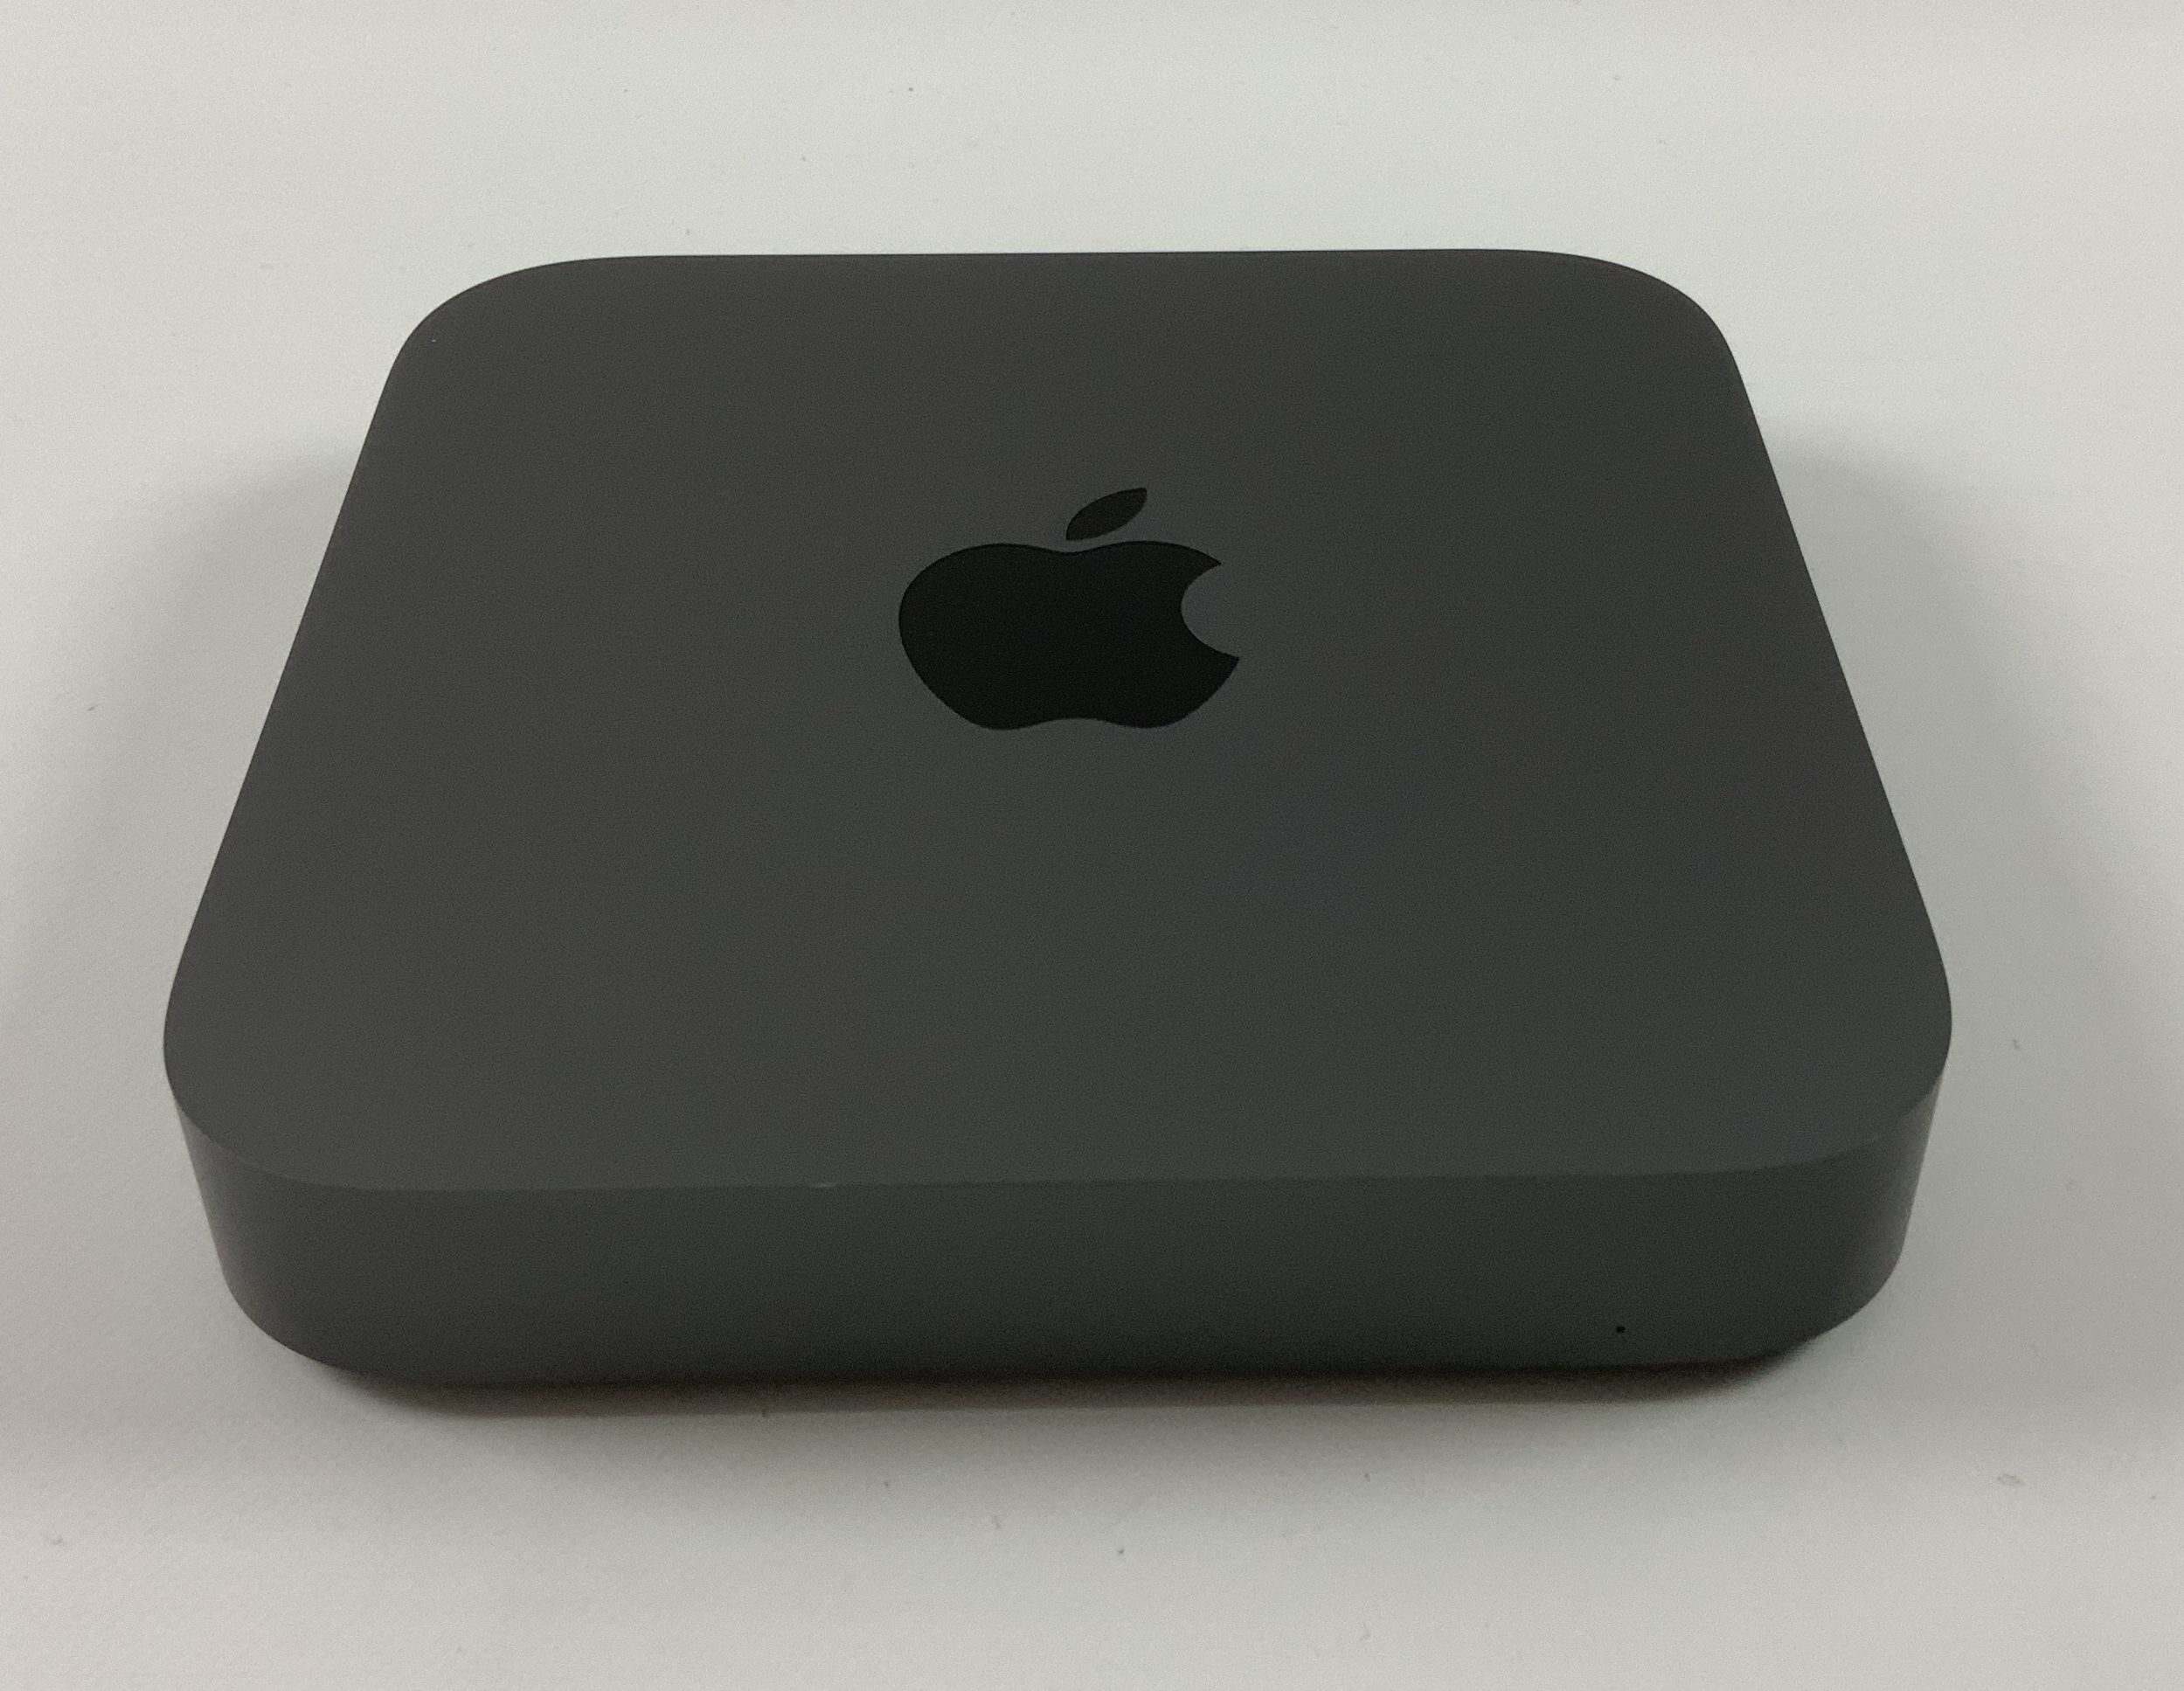 Mac Mini Late 2018 (Intel Quad-Core i3 3.6 GHz 8 GB RAM 256 GB SSD), Intel Quad-Core i3 3.6 GHz, 8 GB RAM, 256 GB SSD, obraz 1